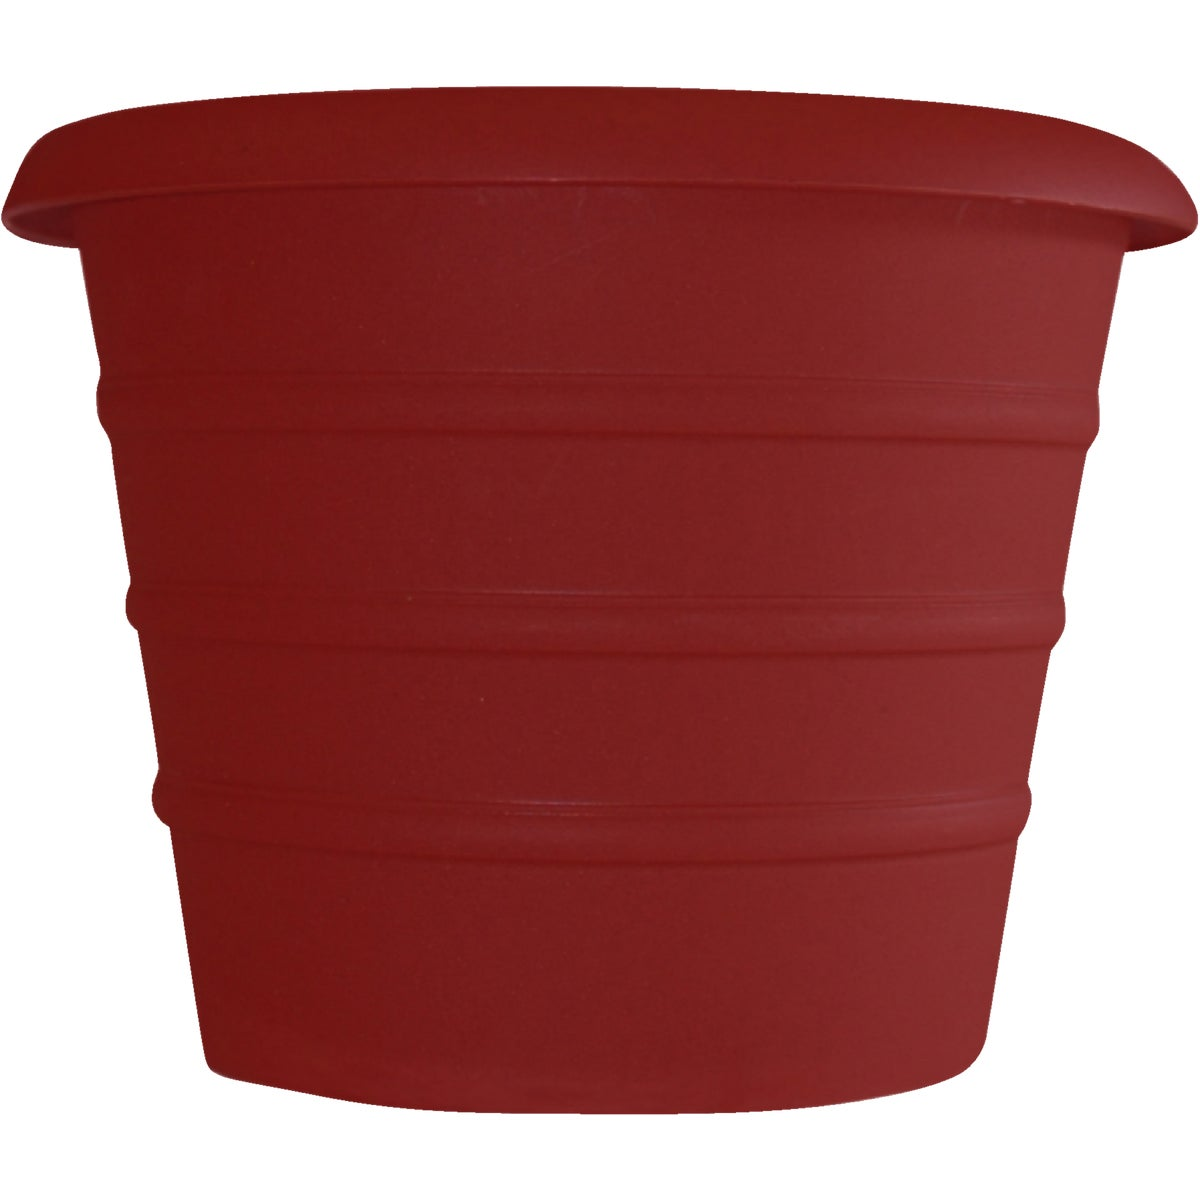 "12"" RED MARINA POT - MSA12001F85 by Myers Industries Inc"